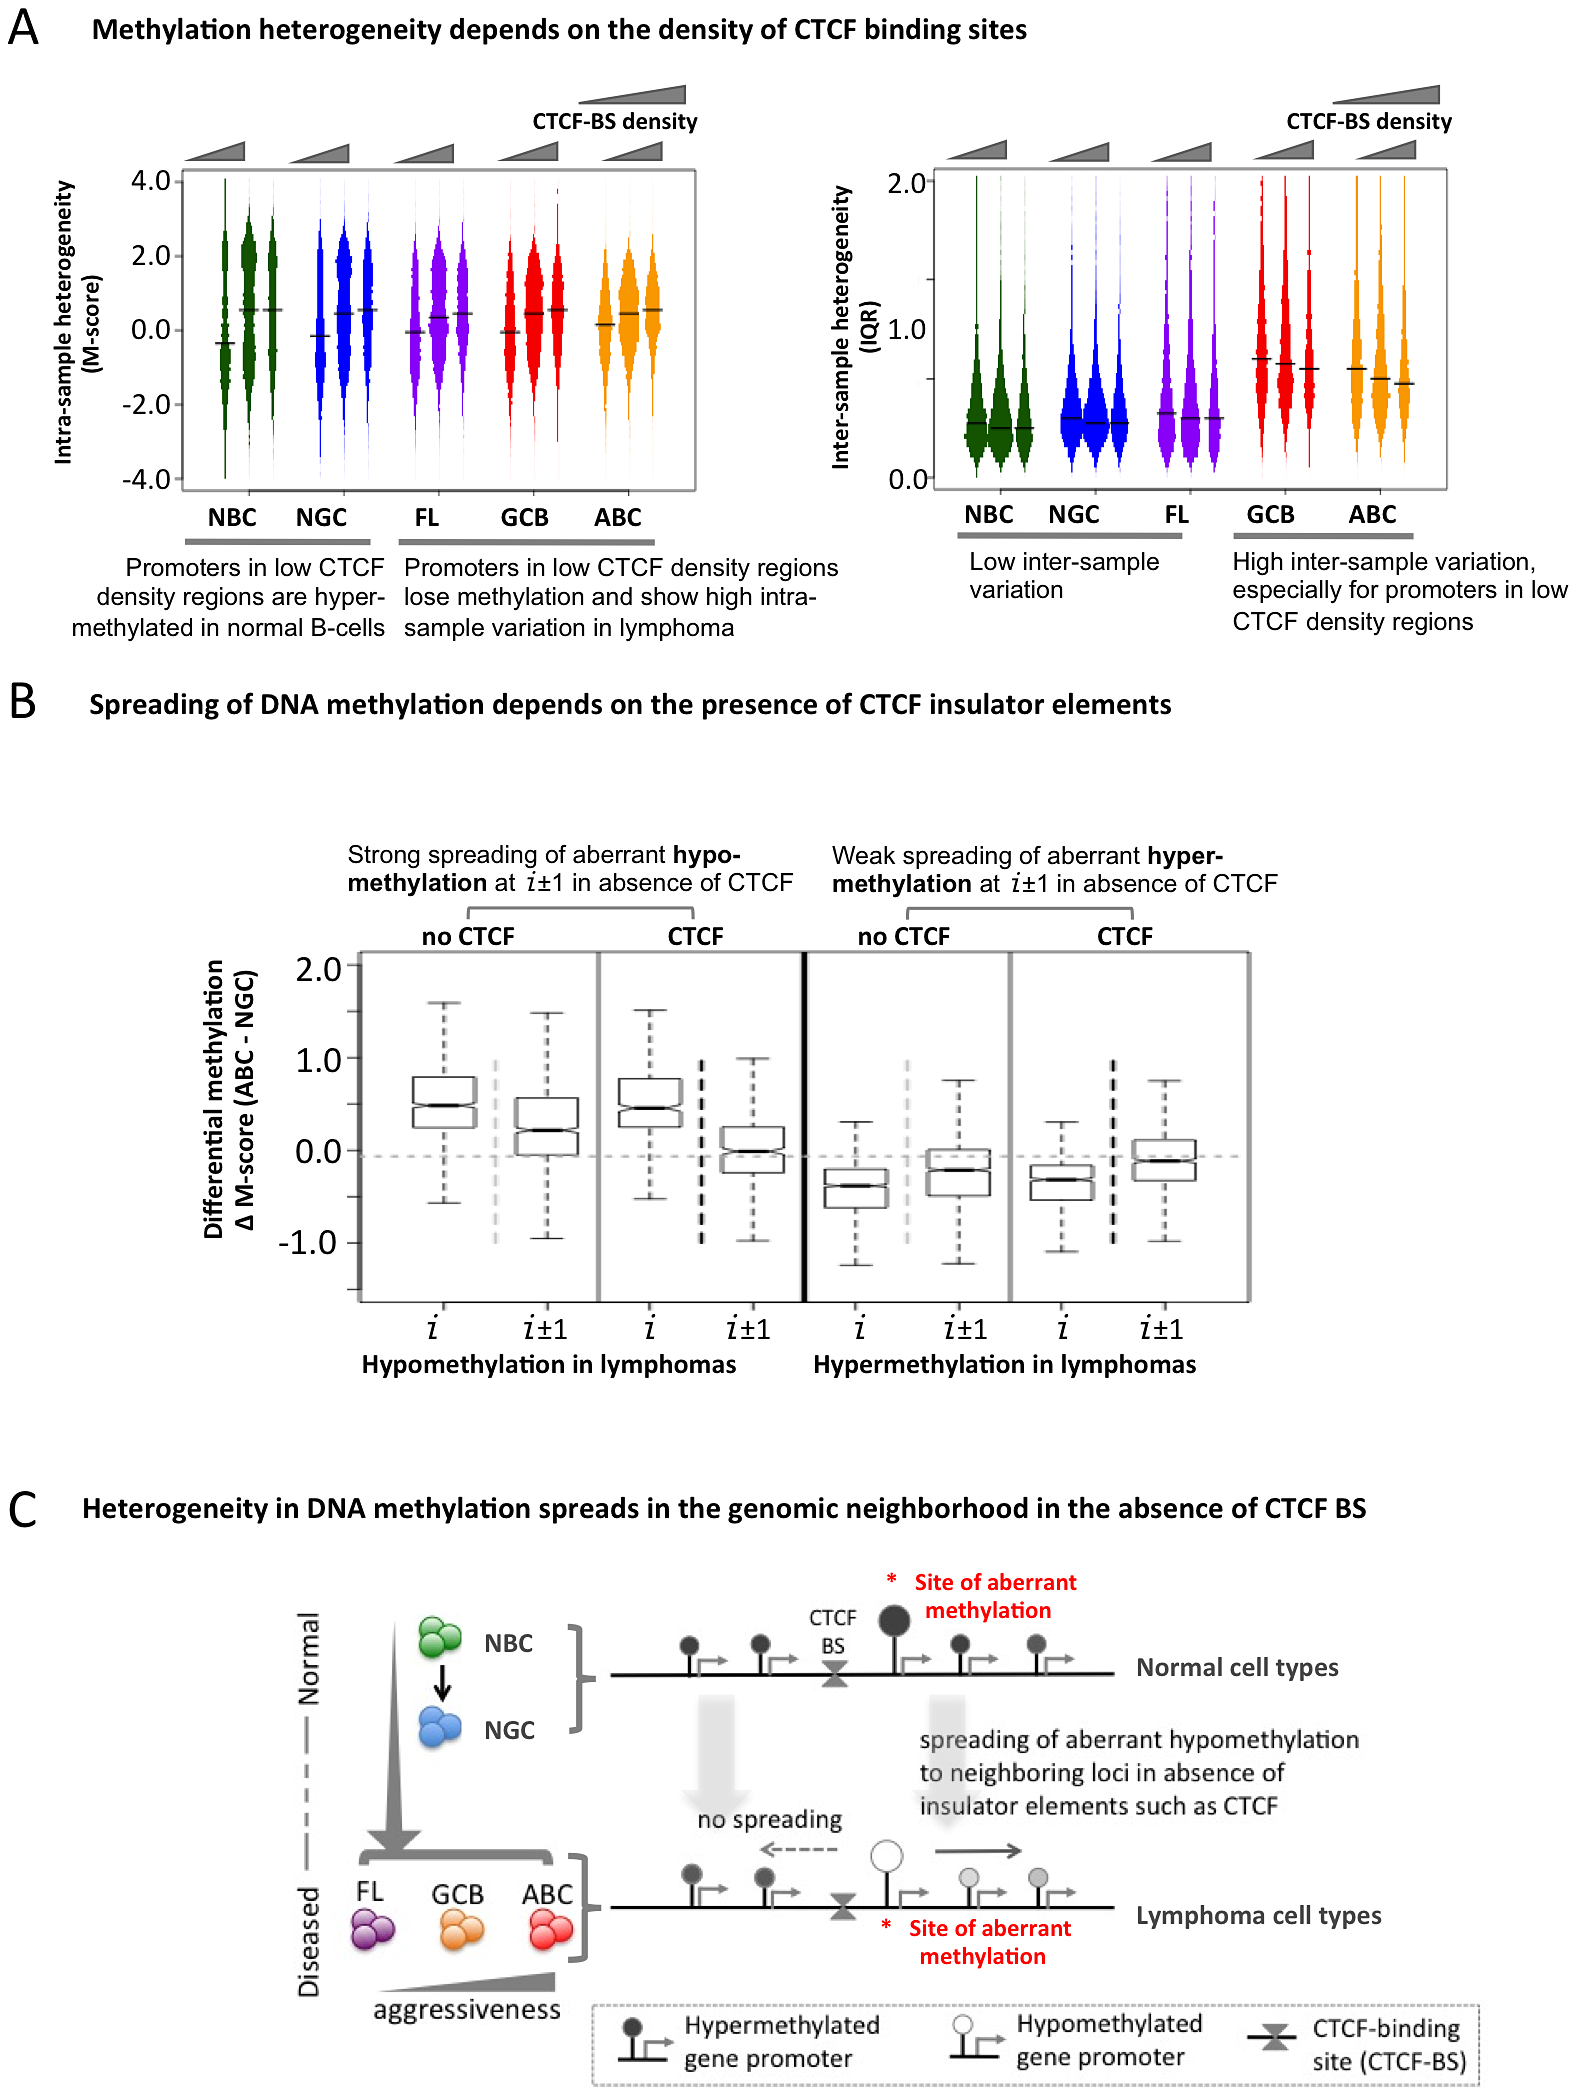 The insulator factor CTCF prevents spreading of aberrant methylation.